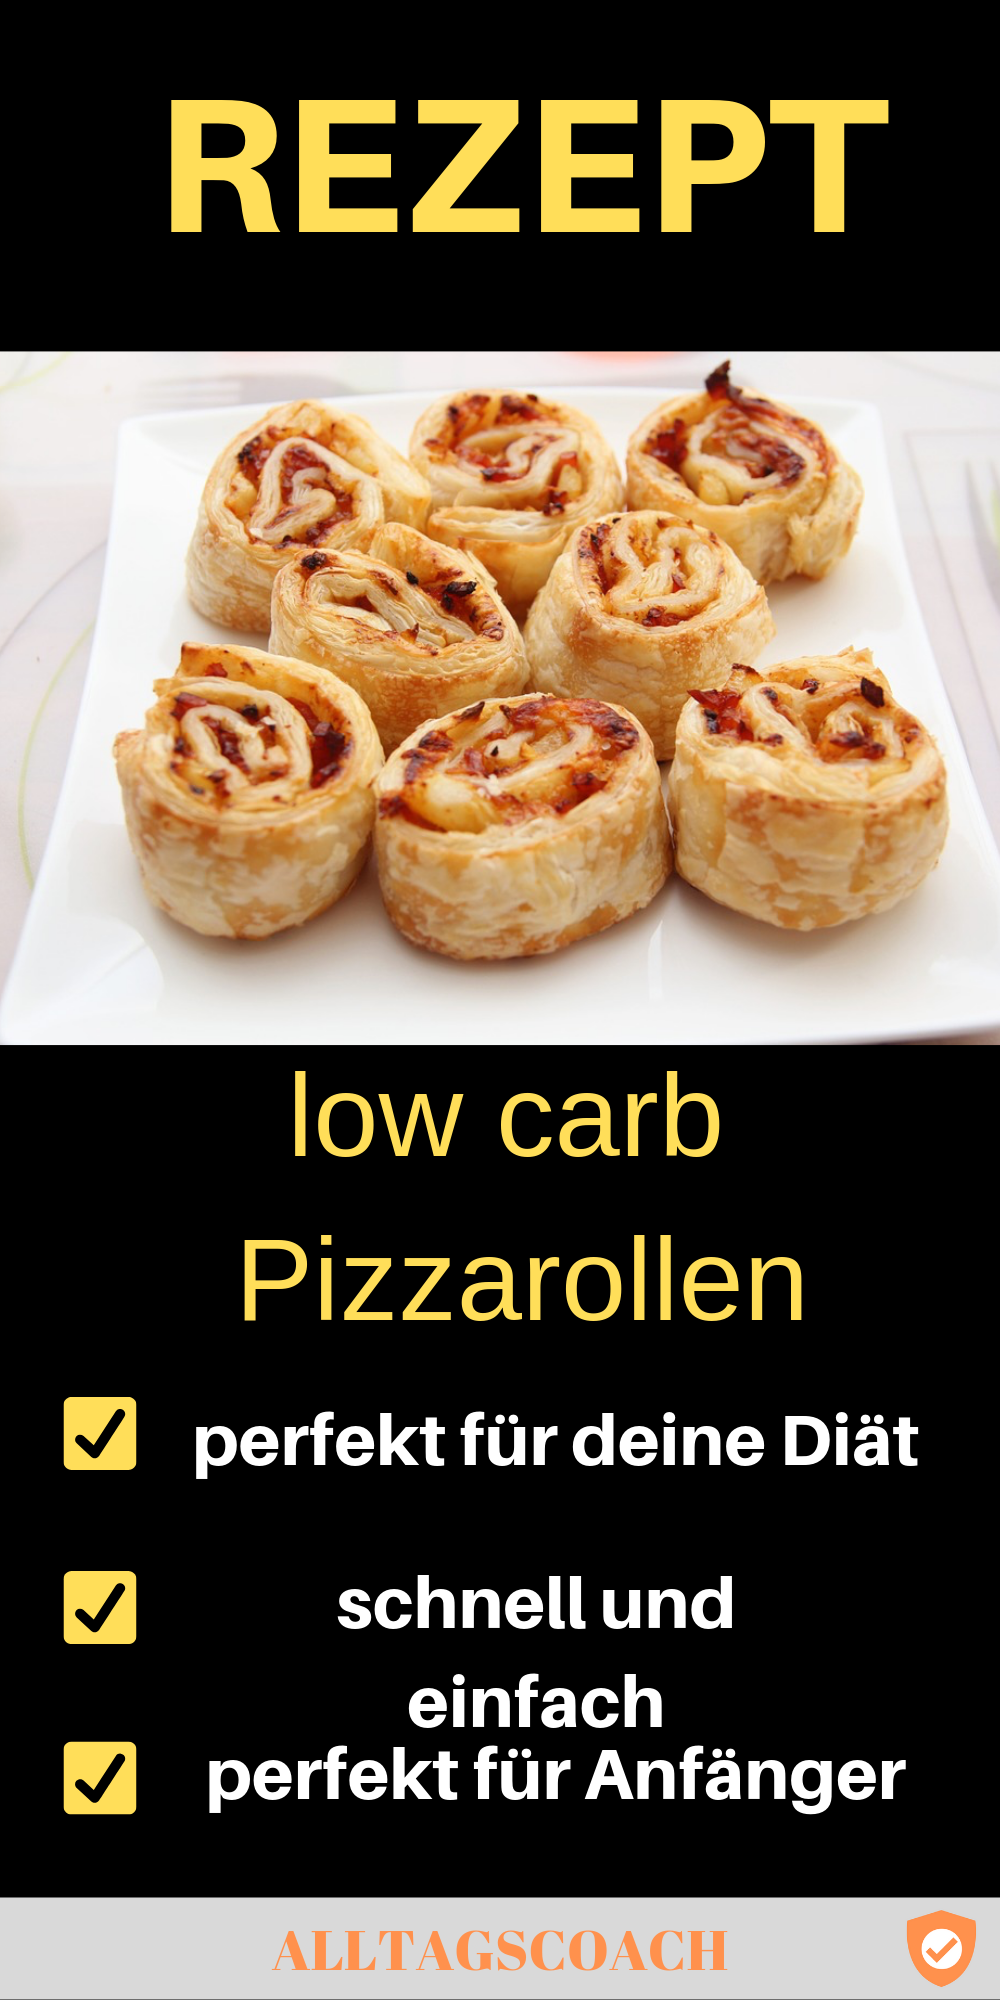 Pizzarollen low carb